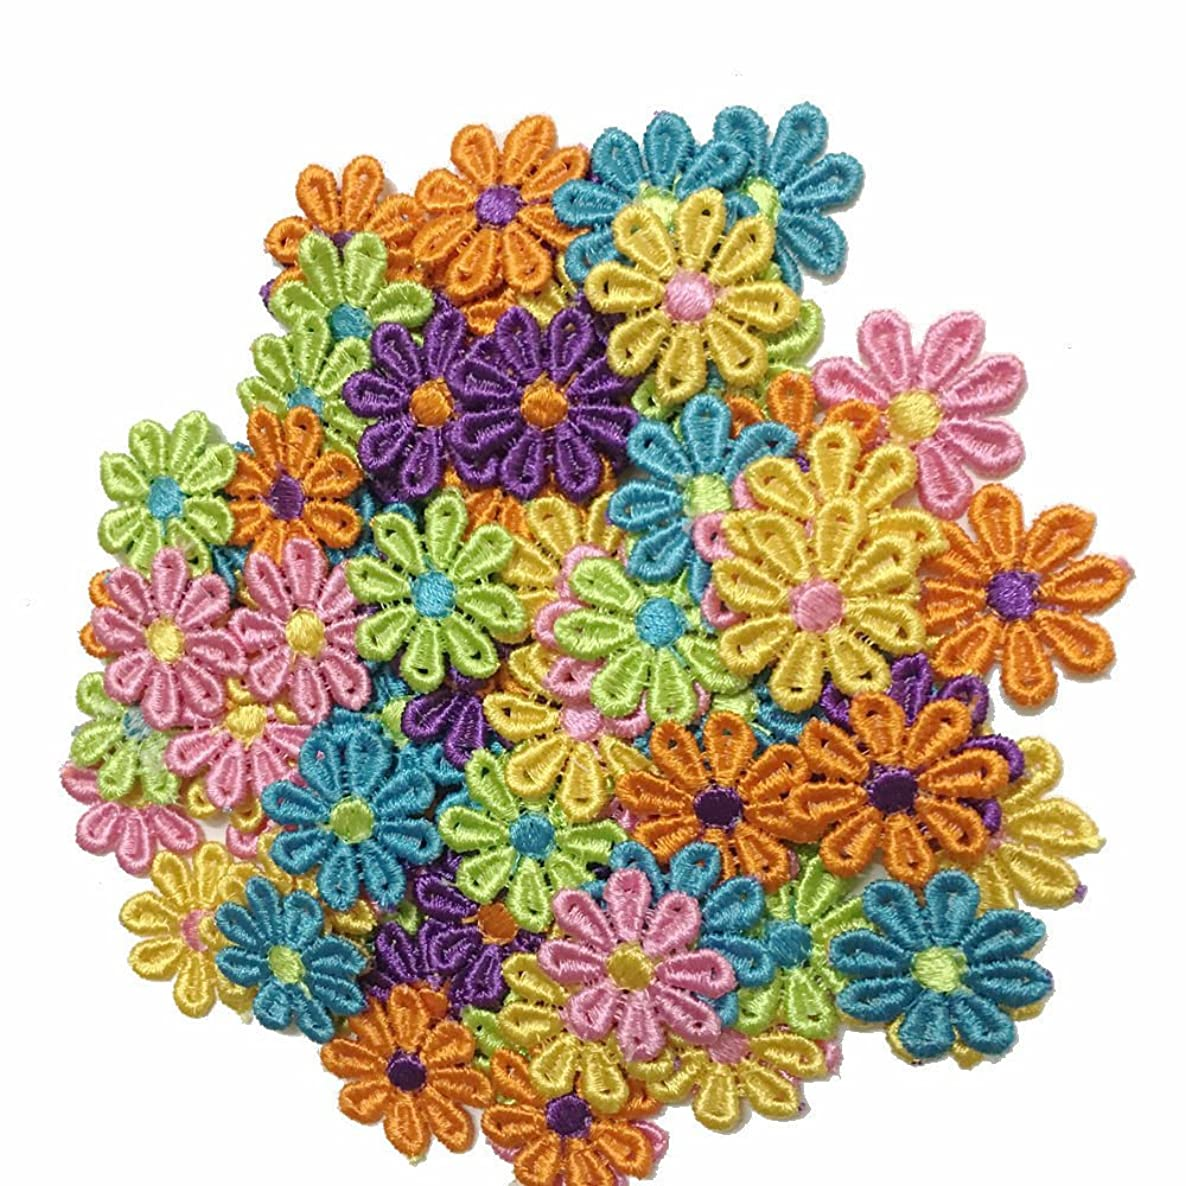 100pcs Colorful Daisy Flowers Embroidered Sew On Applique Floral Lace Patch Milk Fiber Sewing Trims Clothes Wedding Dress Craft DIY (COLORFUL)